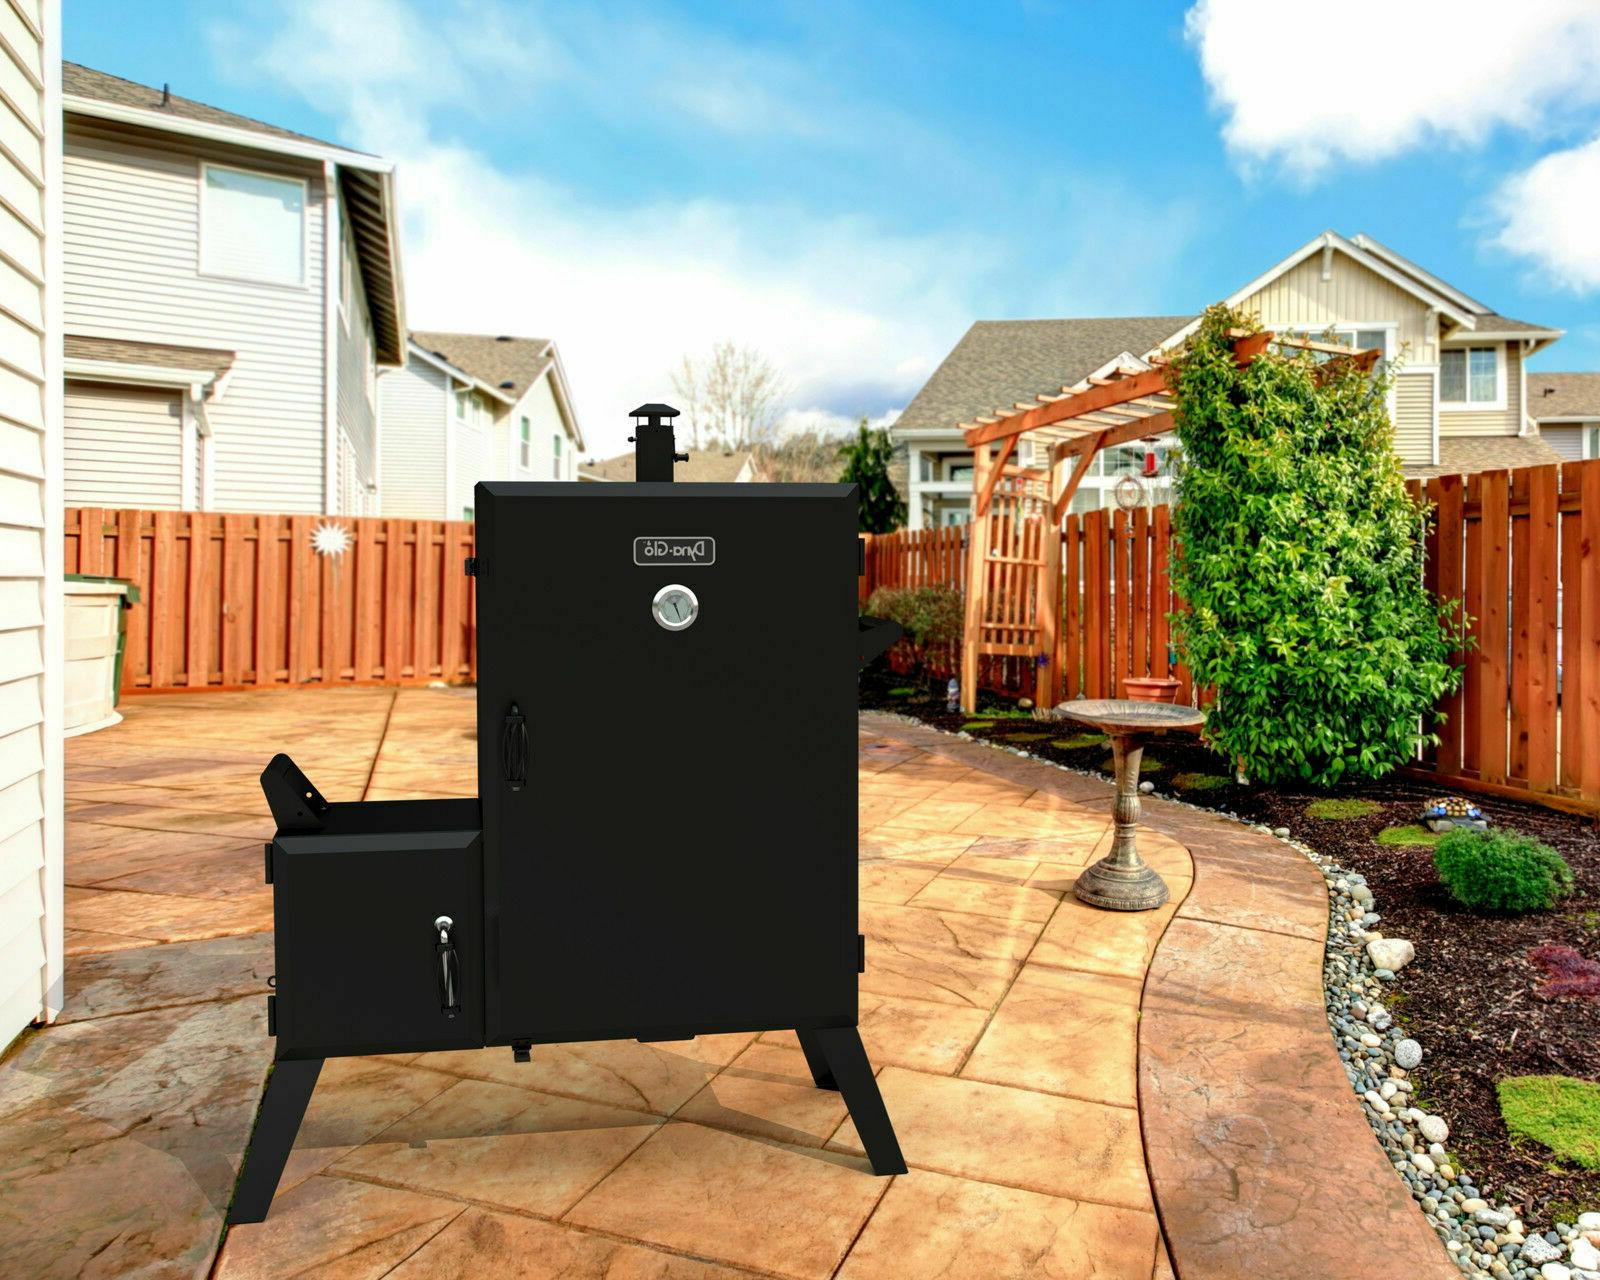 Dyna-Glo 36 in. Vertical Charcoal Wide Outdoor Cooking